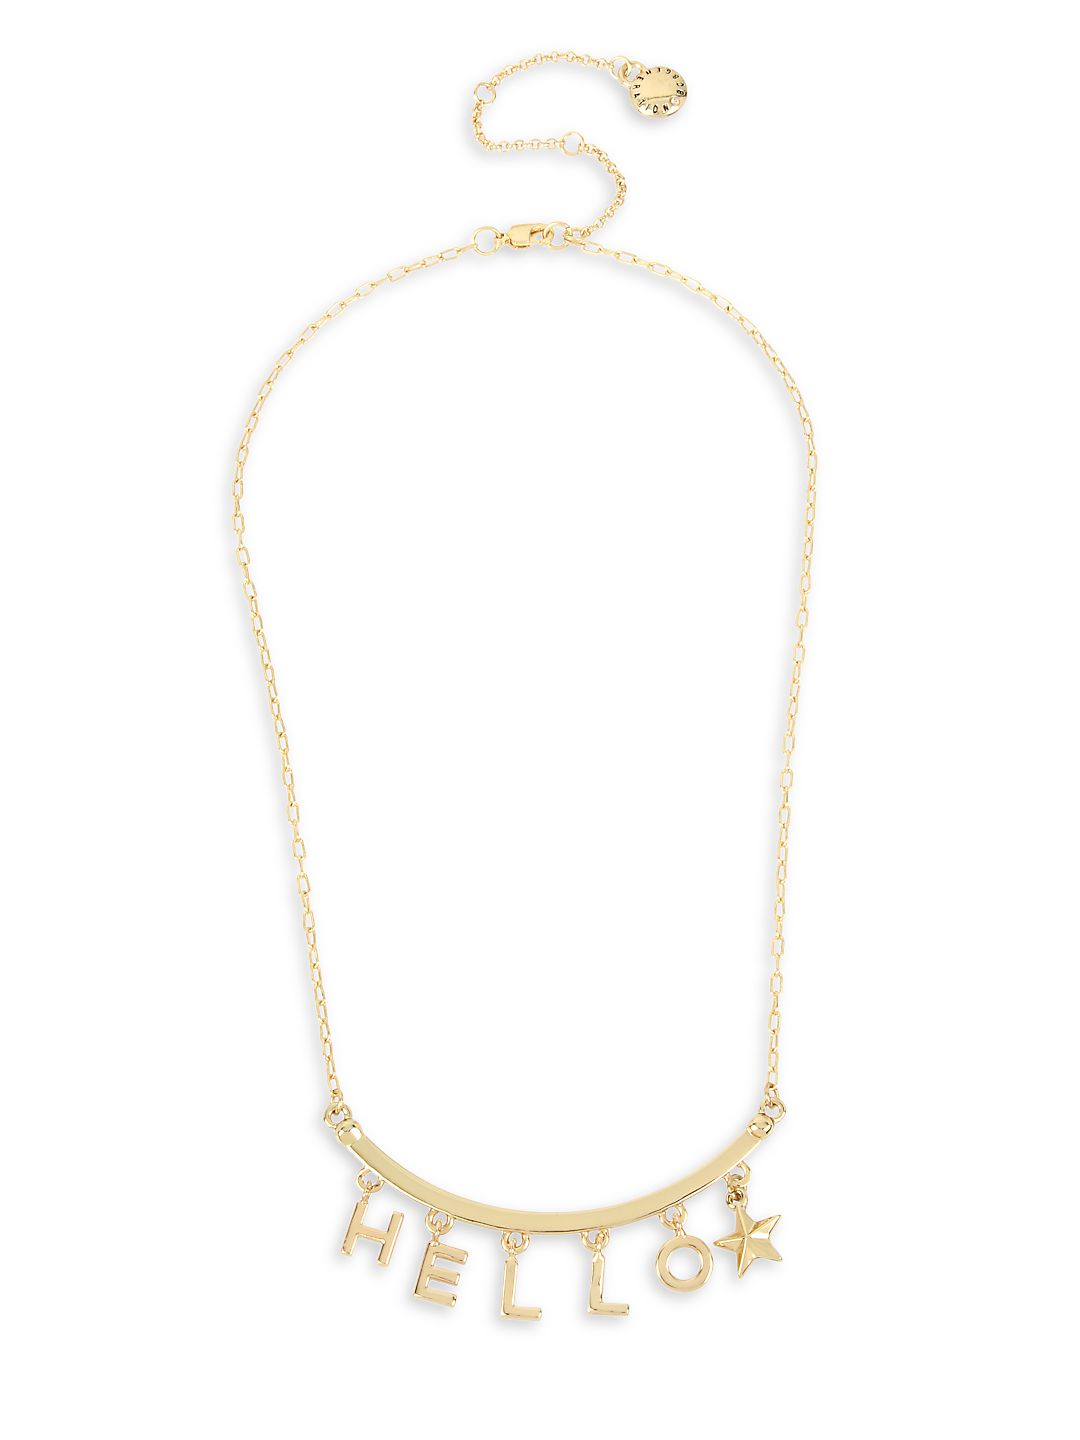 HELLO Boxed Goldtone Frontal Necklace